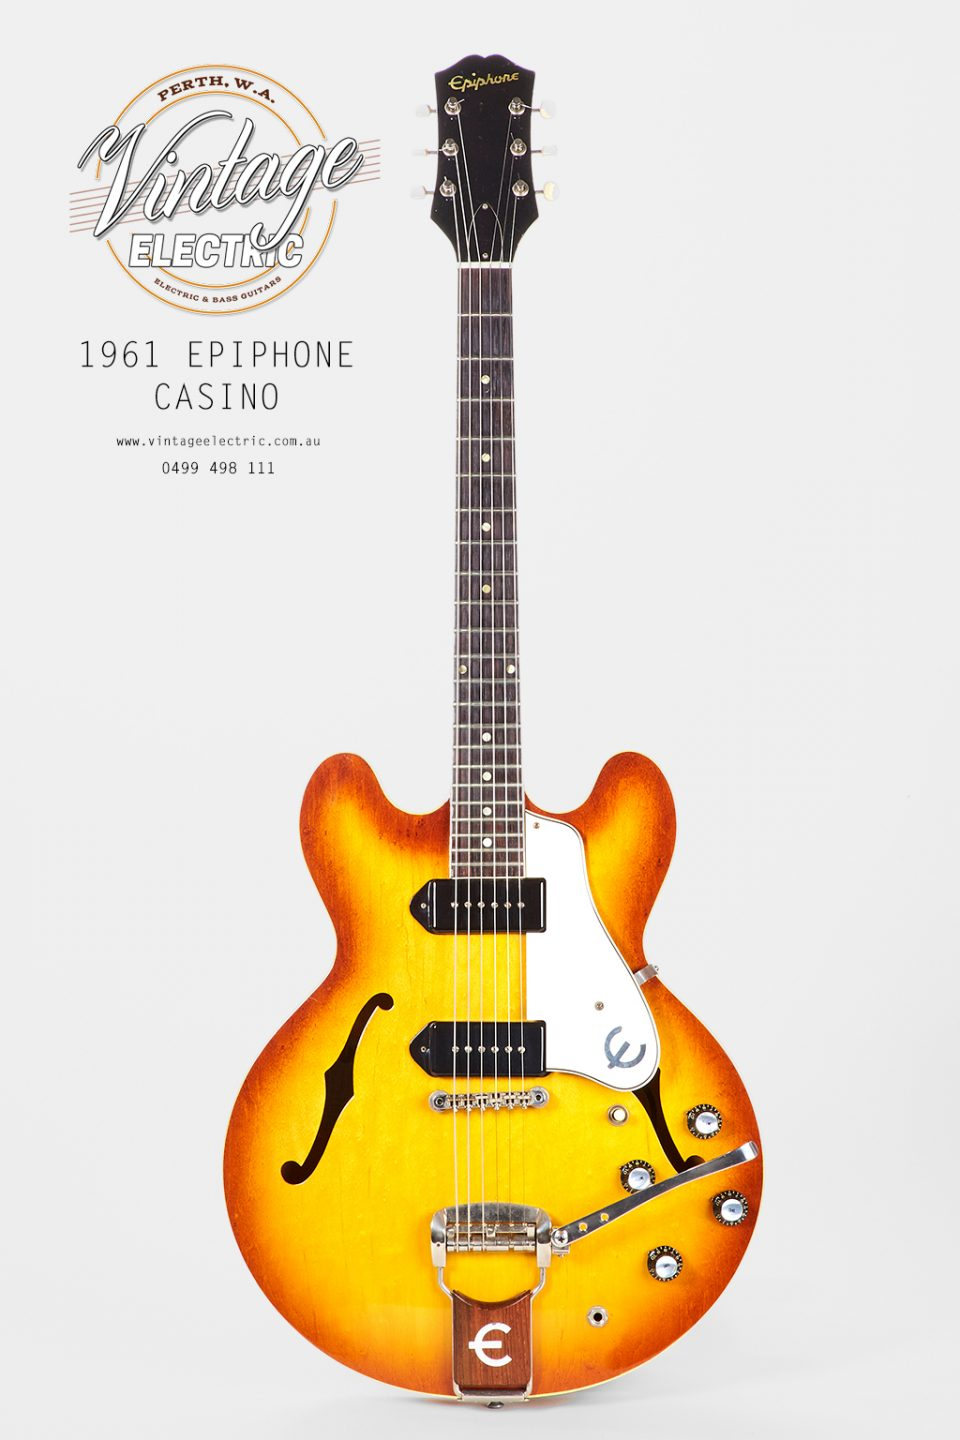 1961 Epiphone Casino USA Iced Tea